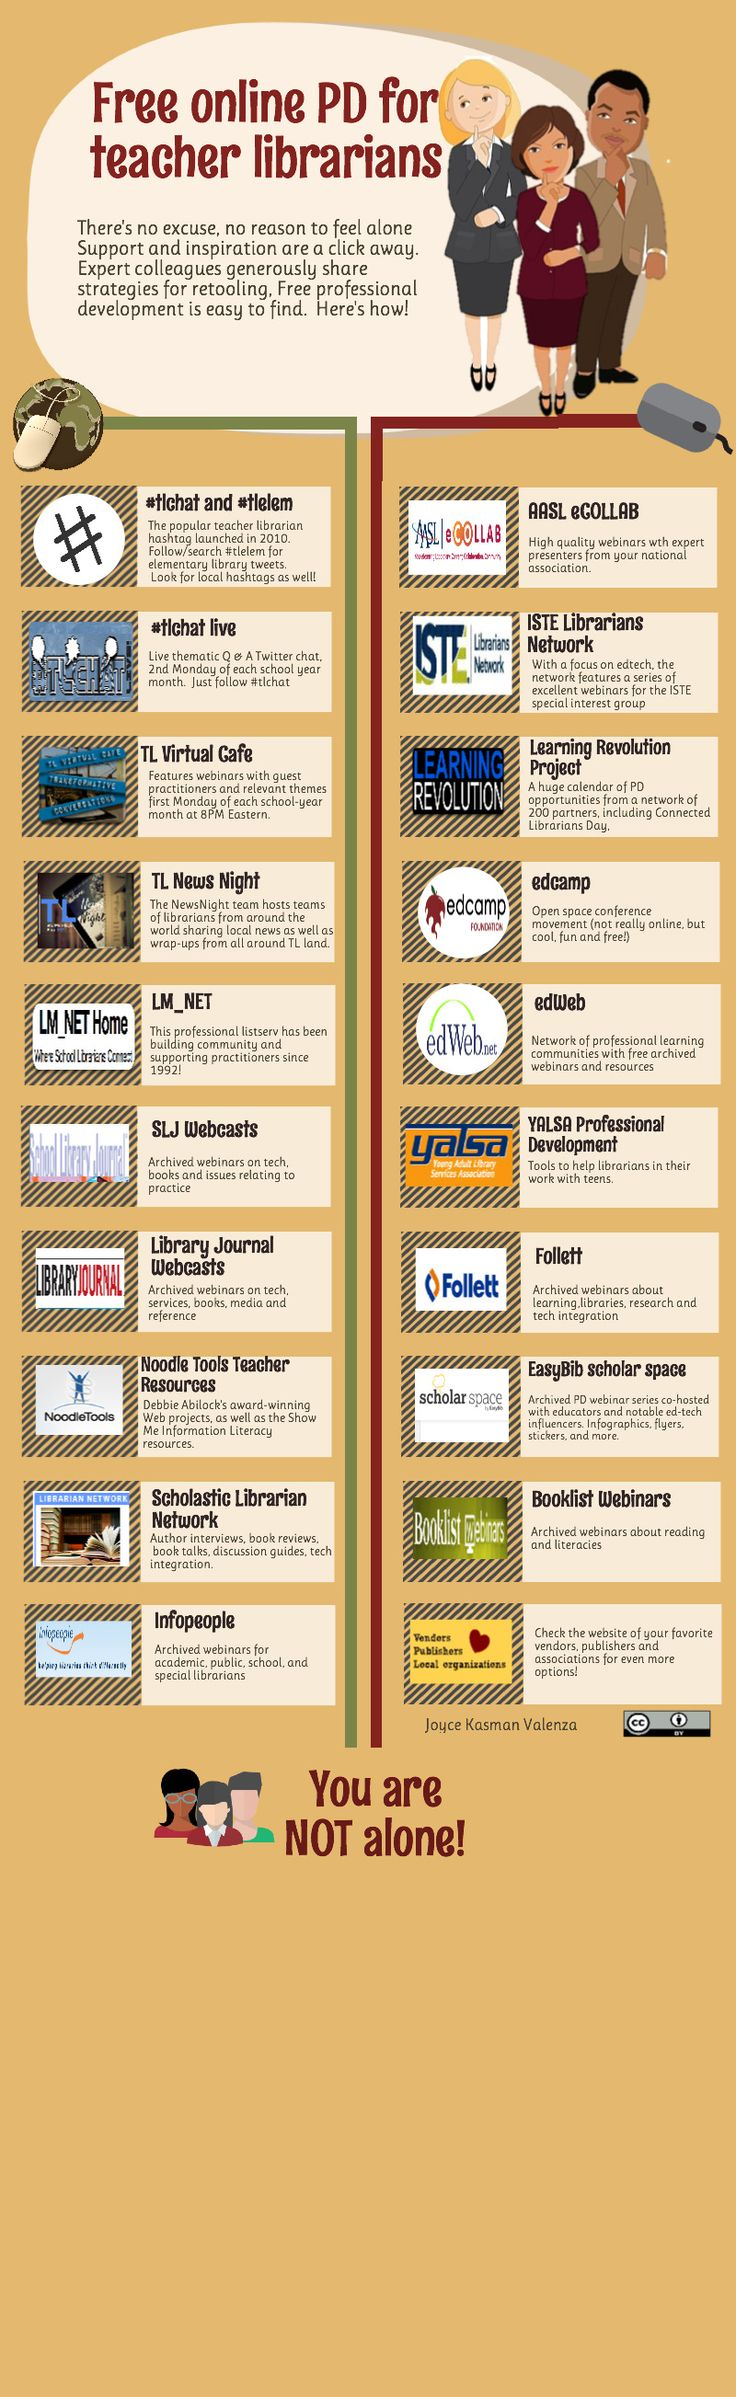 Free online PD for teacher librarians - wonderful supportive resources for media specialists